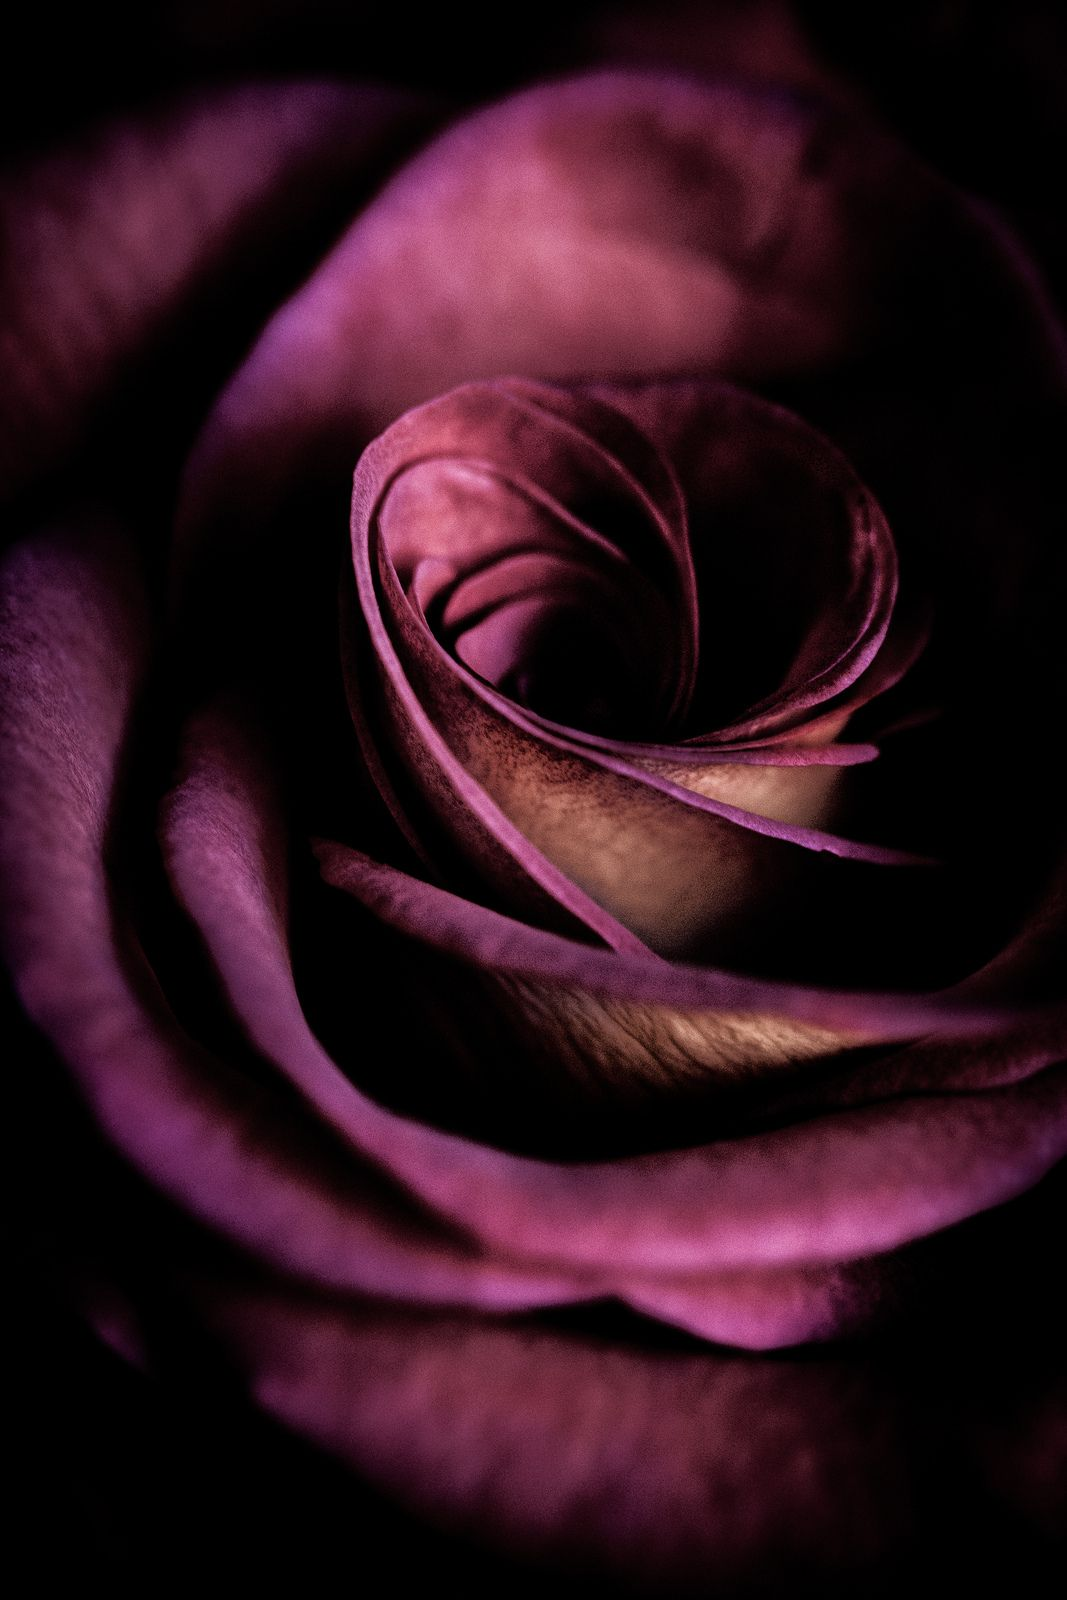 """""""Some flowers are more perfect than others"""" by alan shapiro photography on Flickr - Some flowers are more perfect than others, like this beautiful deep purple rose."""